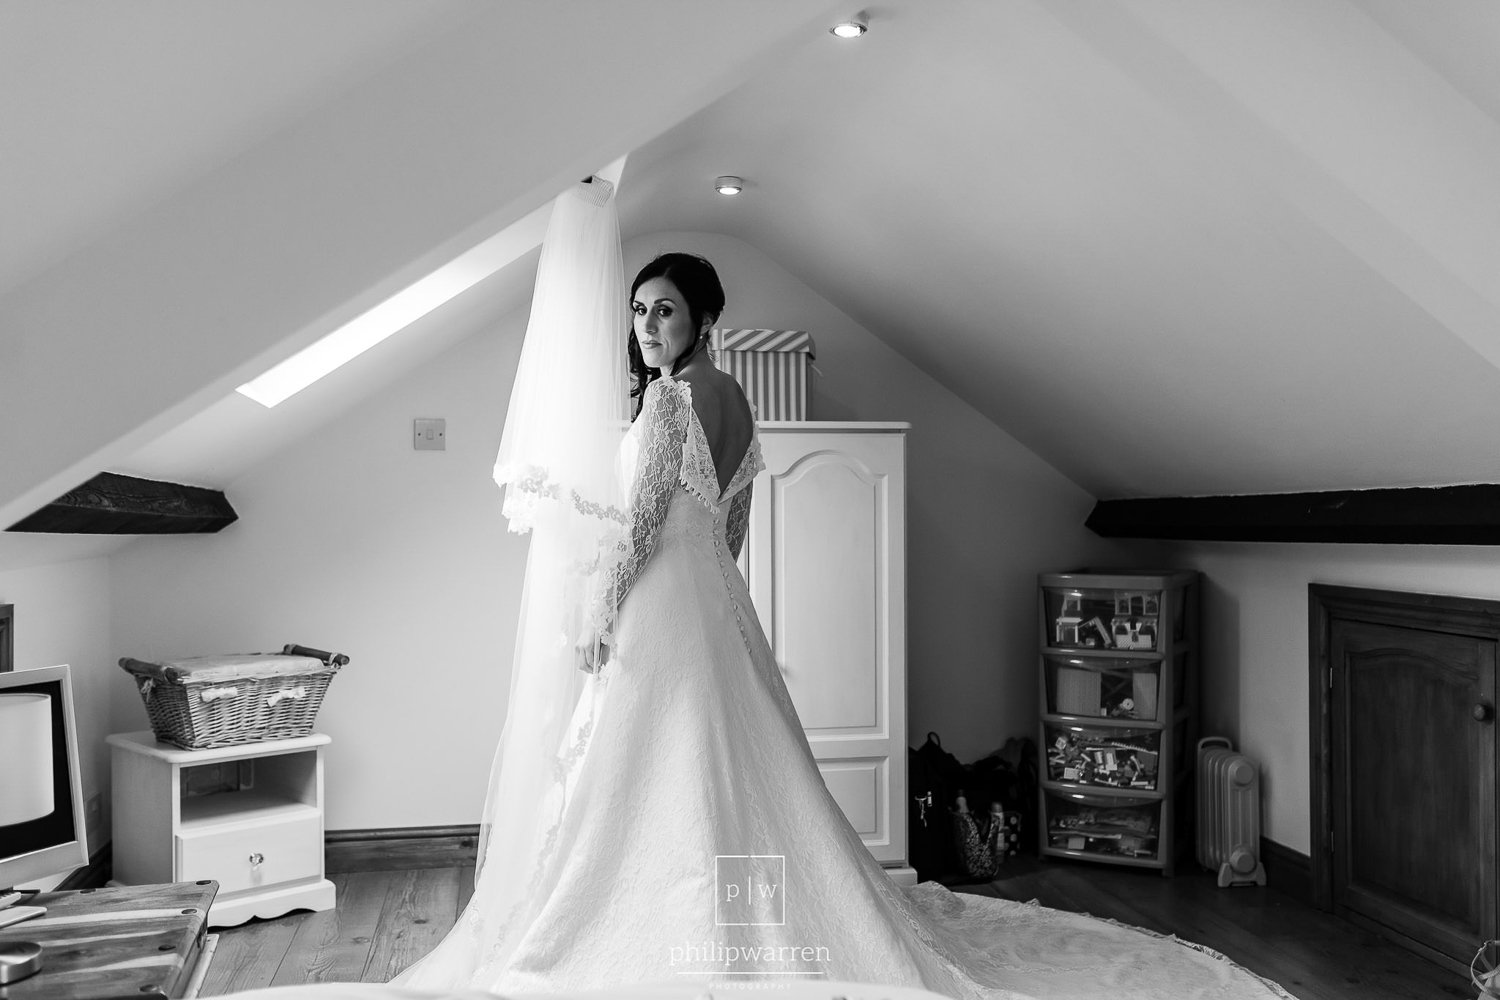 bride in her wedding dress in bedroom